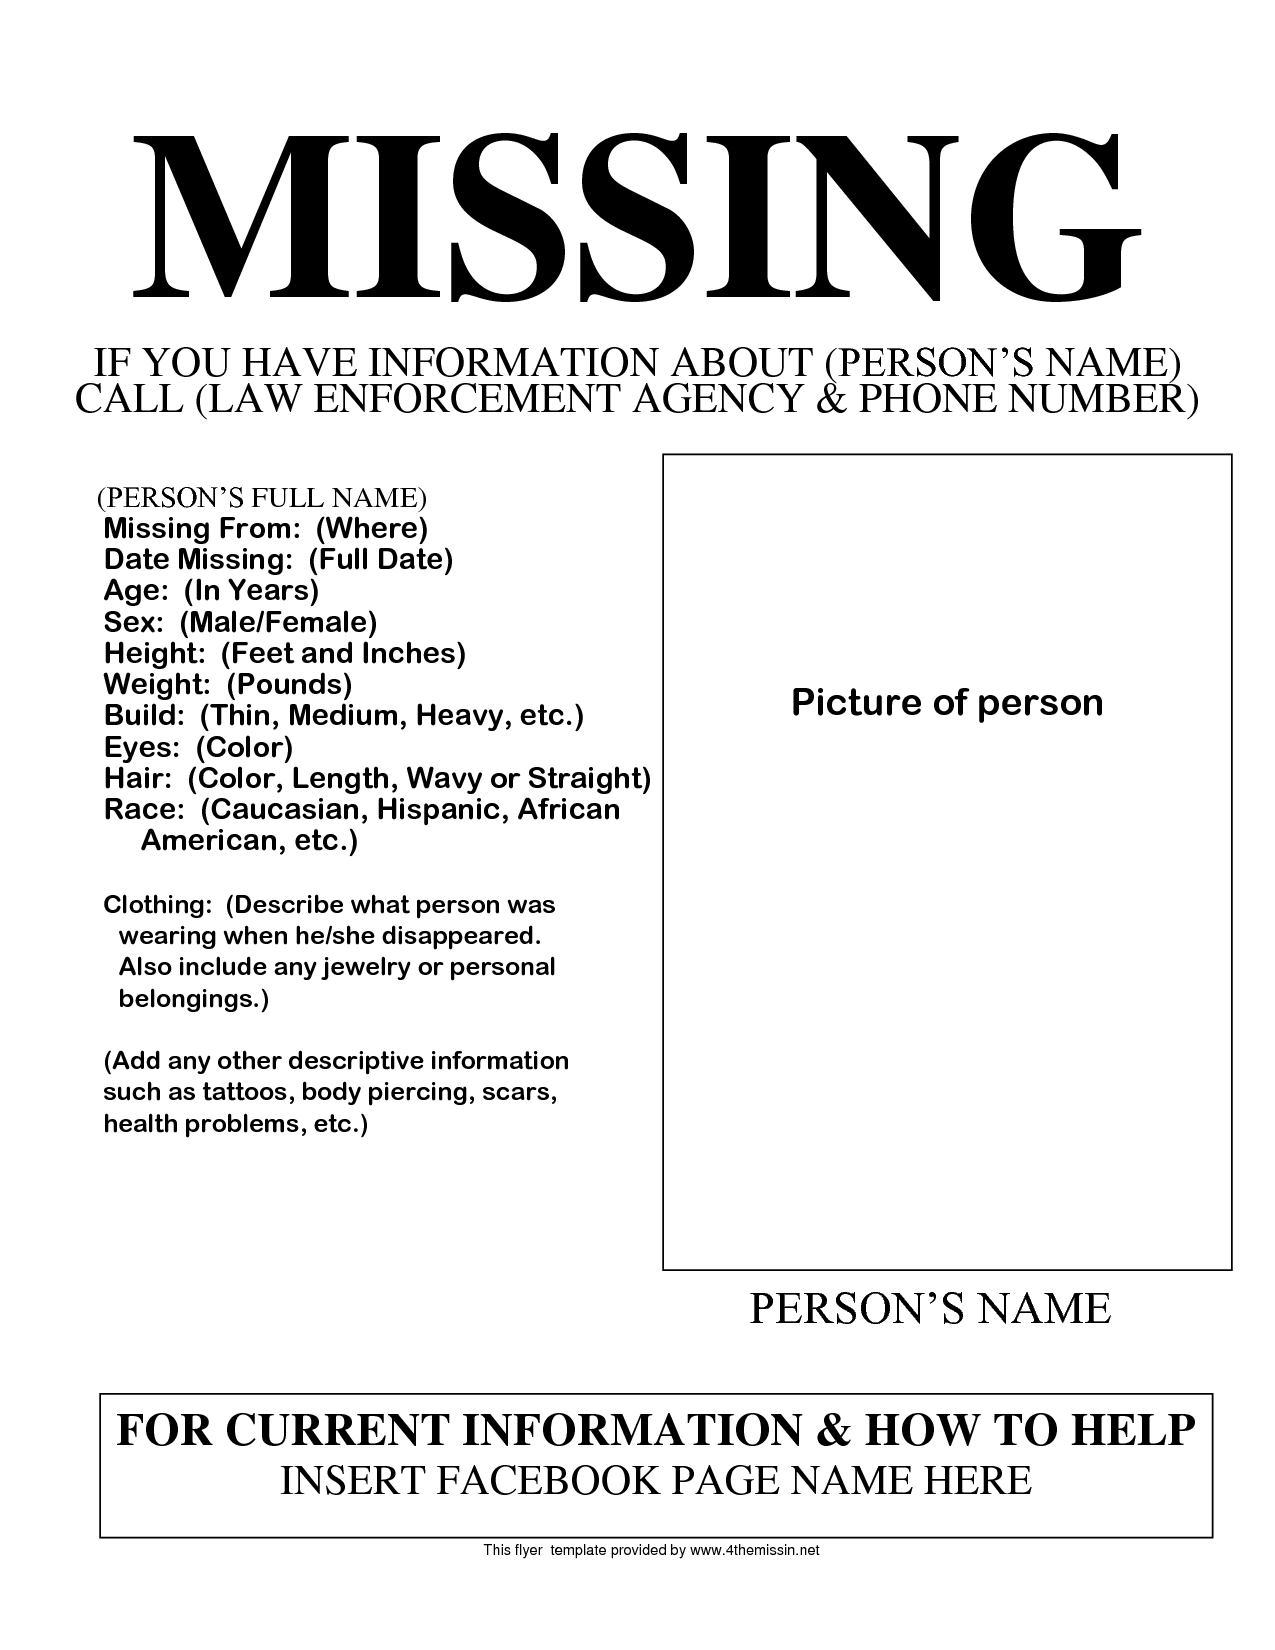 Missing Persons Template Free Flyers Missing People Help – Missing Posters Template